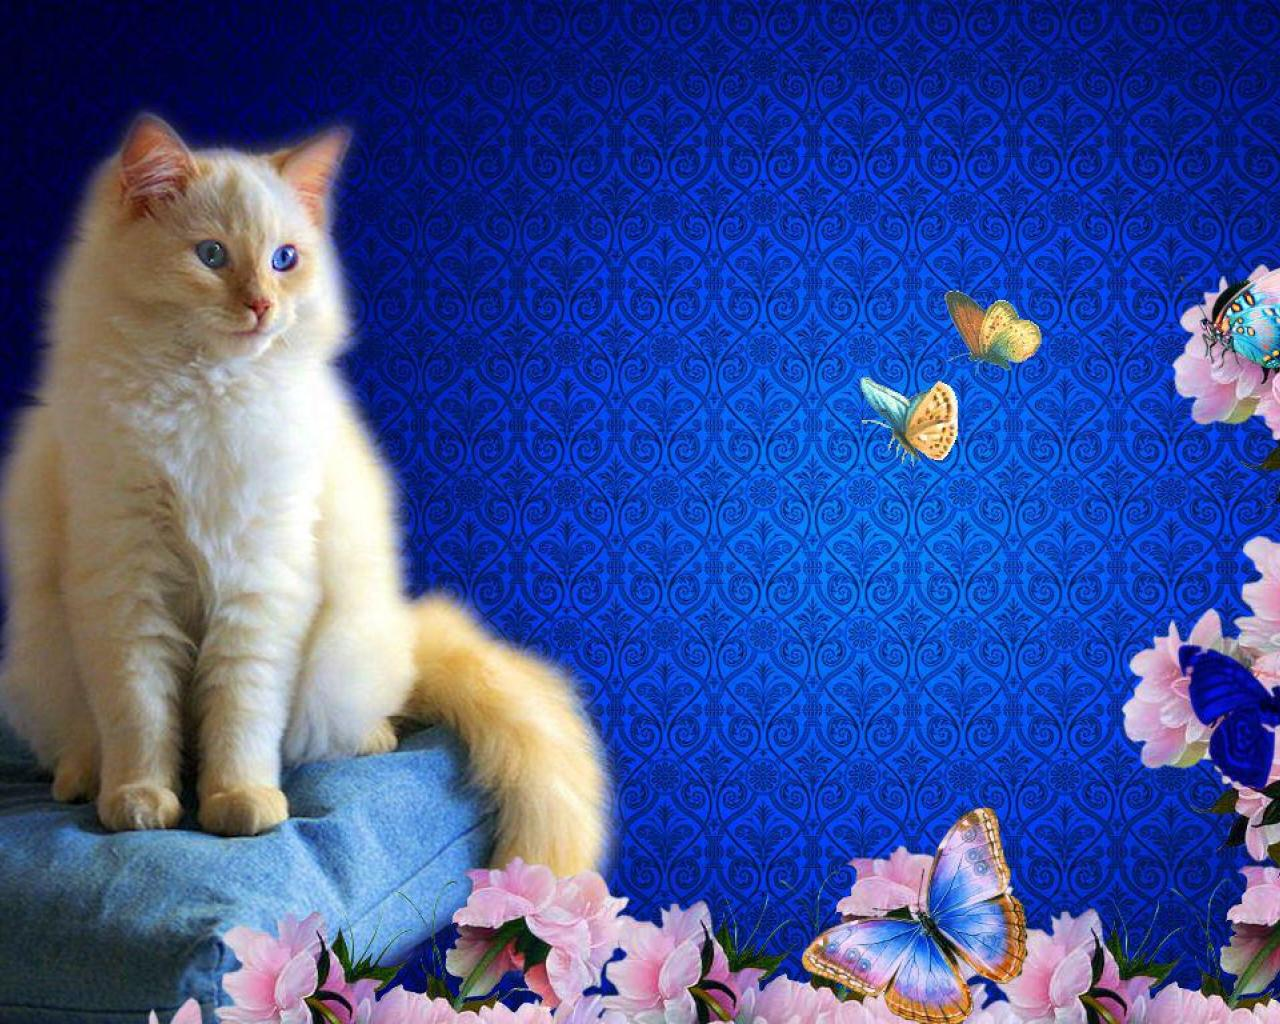 CAT WITH FLOWERS AND BUTTERFLIES WALLPAPER   140537   HD Wallpapers 1280x1024